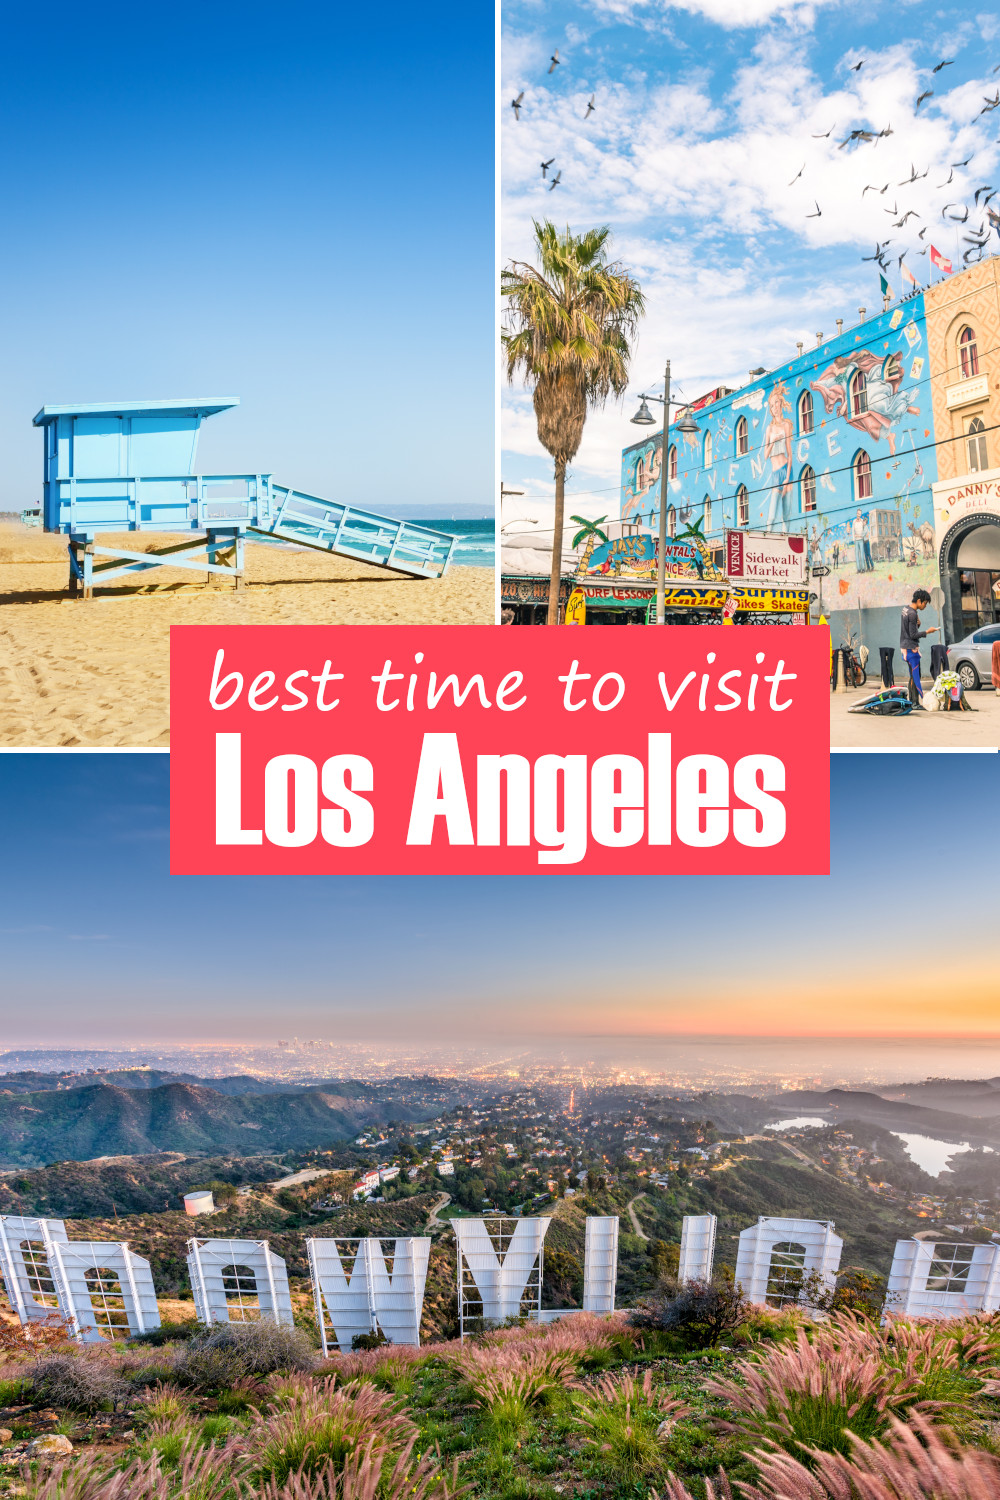 The best time to visit Los Angeles for the weather, beaches, things to do and festivals - a complete guide for when you should go to L.A.